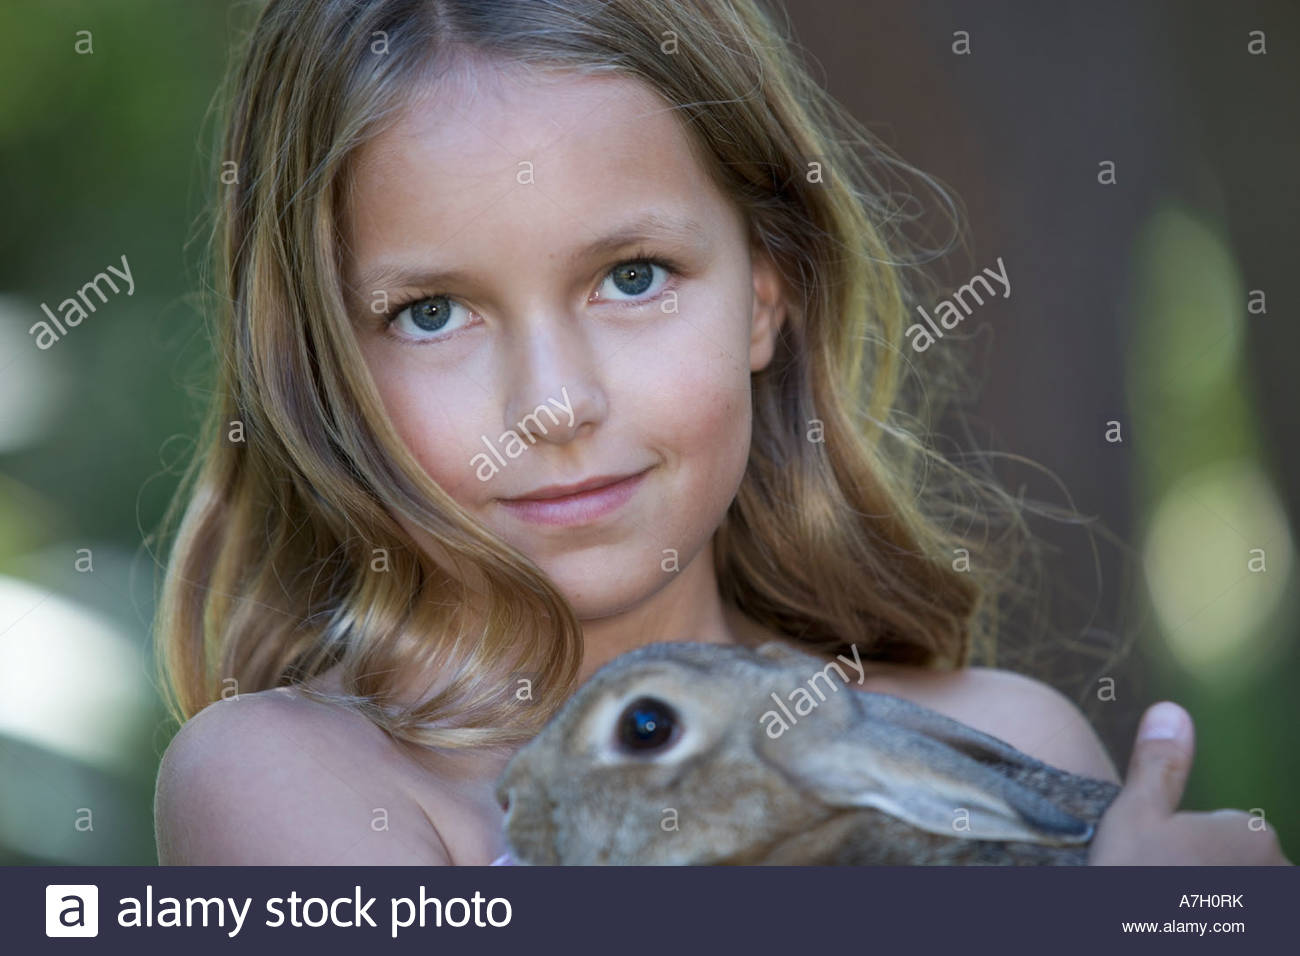 A young girl holding a pet rabbit, close-up - Stock Image